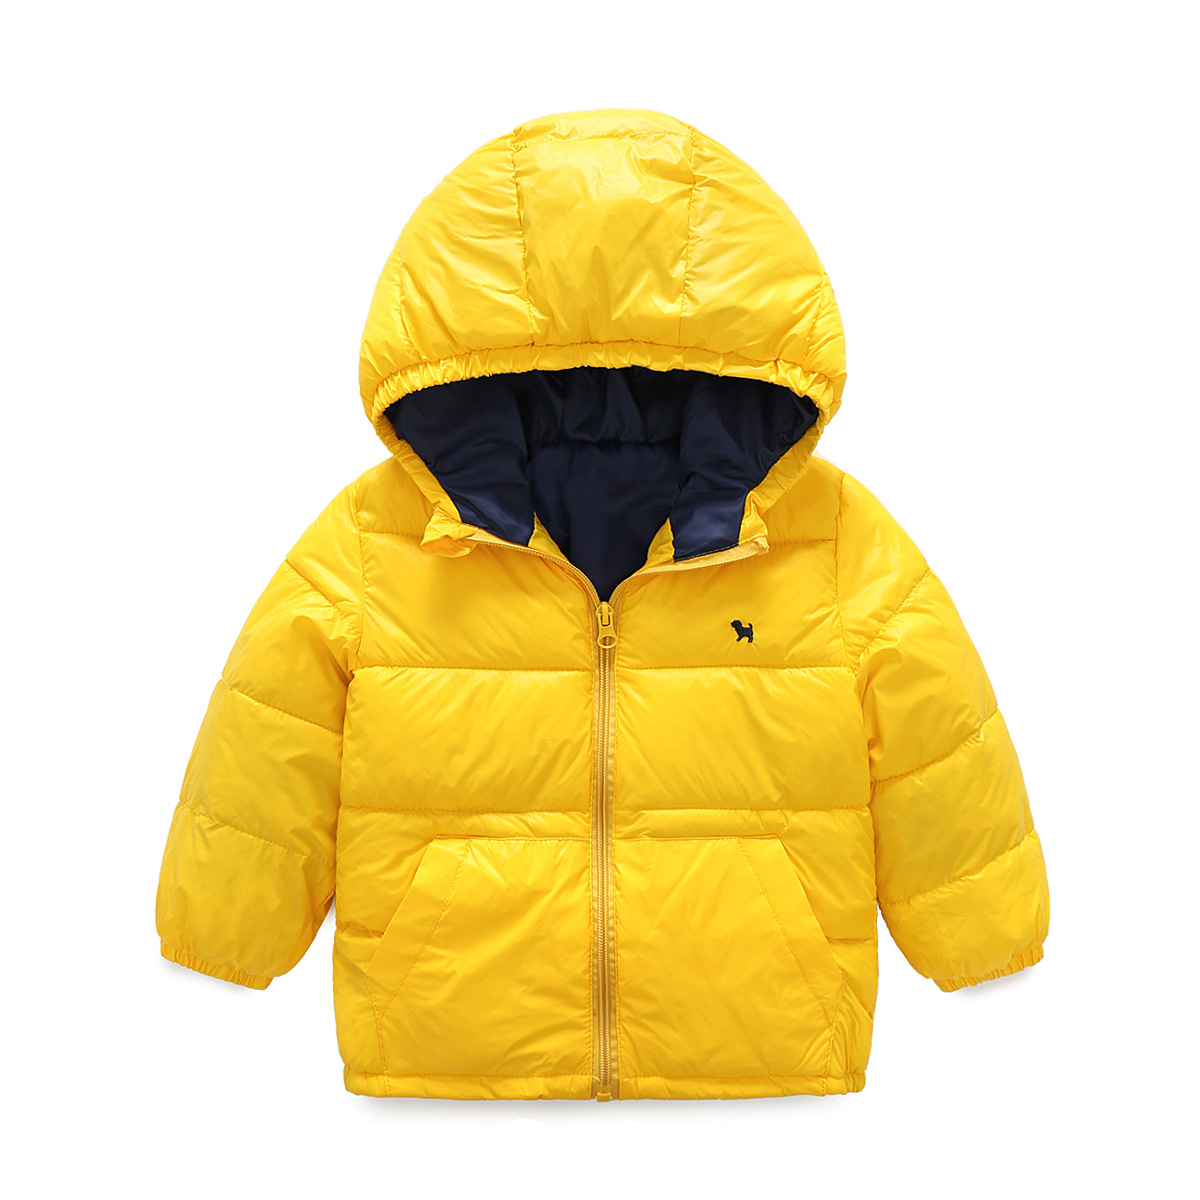 2017 New Autumn Winter 2-9yrs Children Cotton-padded Clothes Boy Thick Warm Cotton Quilted Jacket Baby Kids Outerwear Hooded  free shipping winter new children s wear patch splicing shoulder button boy cotton padded clothes child quilted jacket